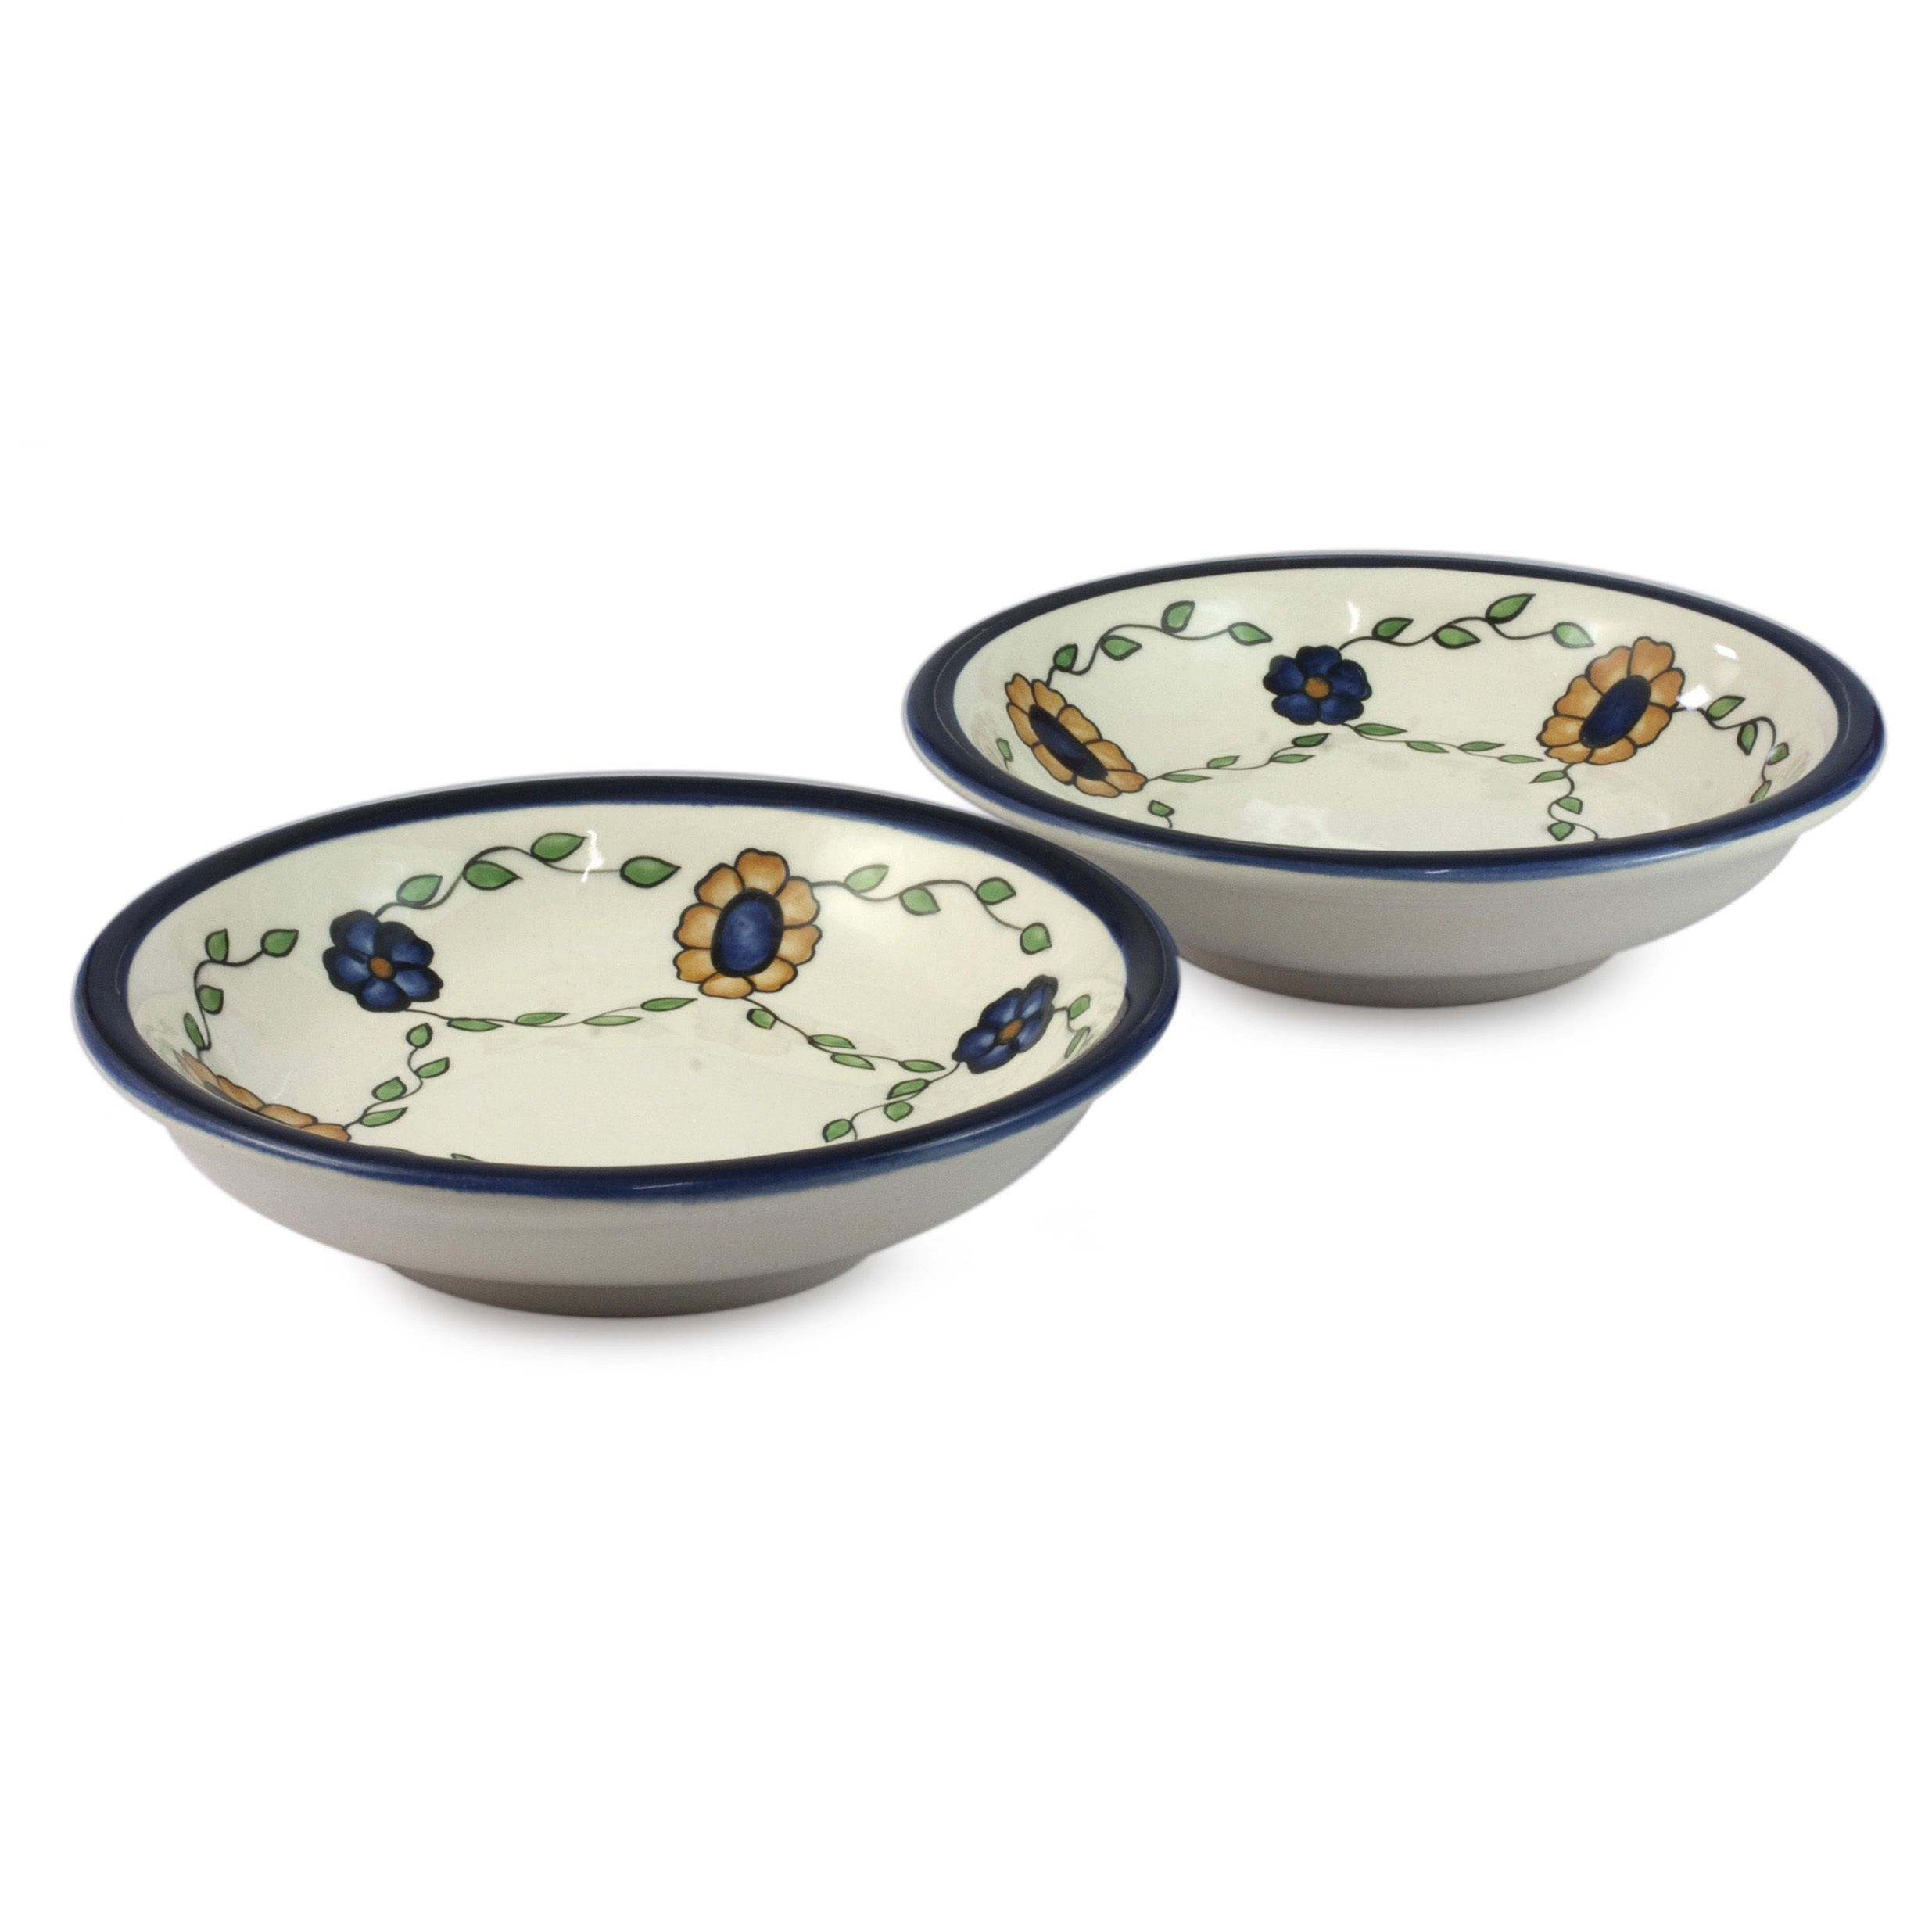 set of  handmade ceramic 'margarita' dinner bowls (guatemala) by  - novica set of  handcrafted ceramic 'margarita' dinner bowls